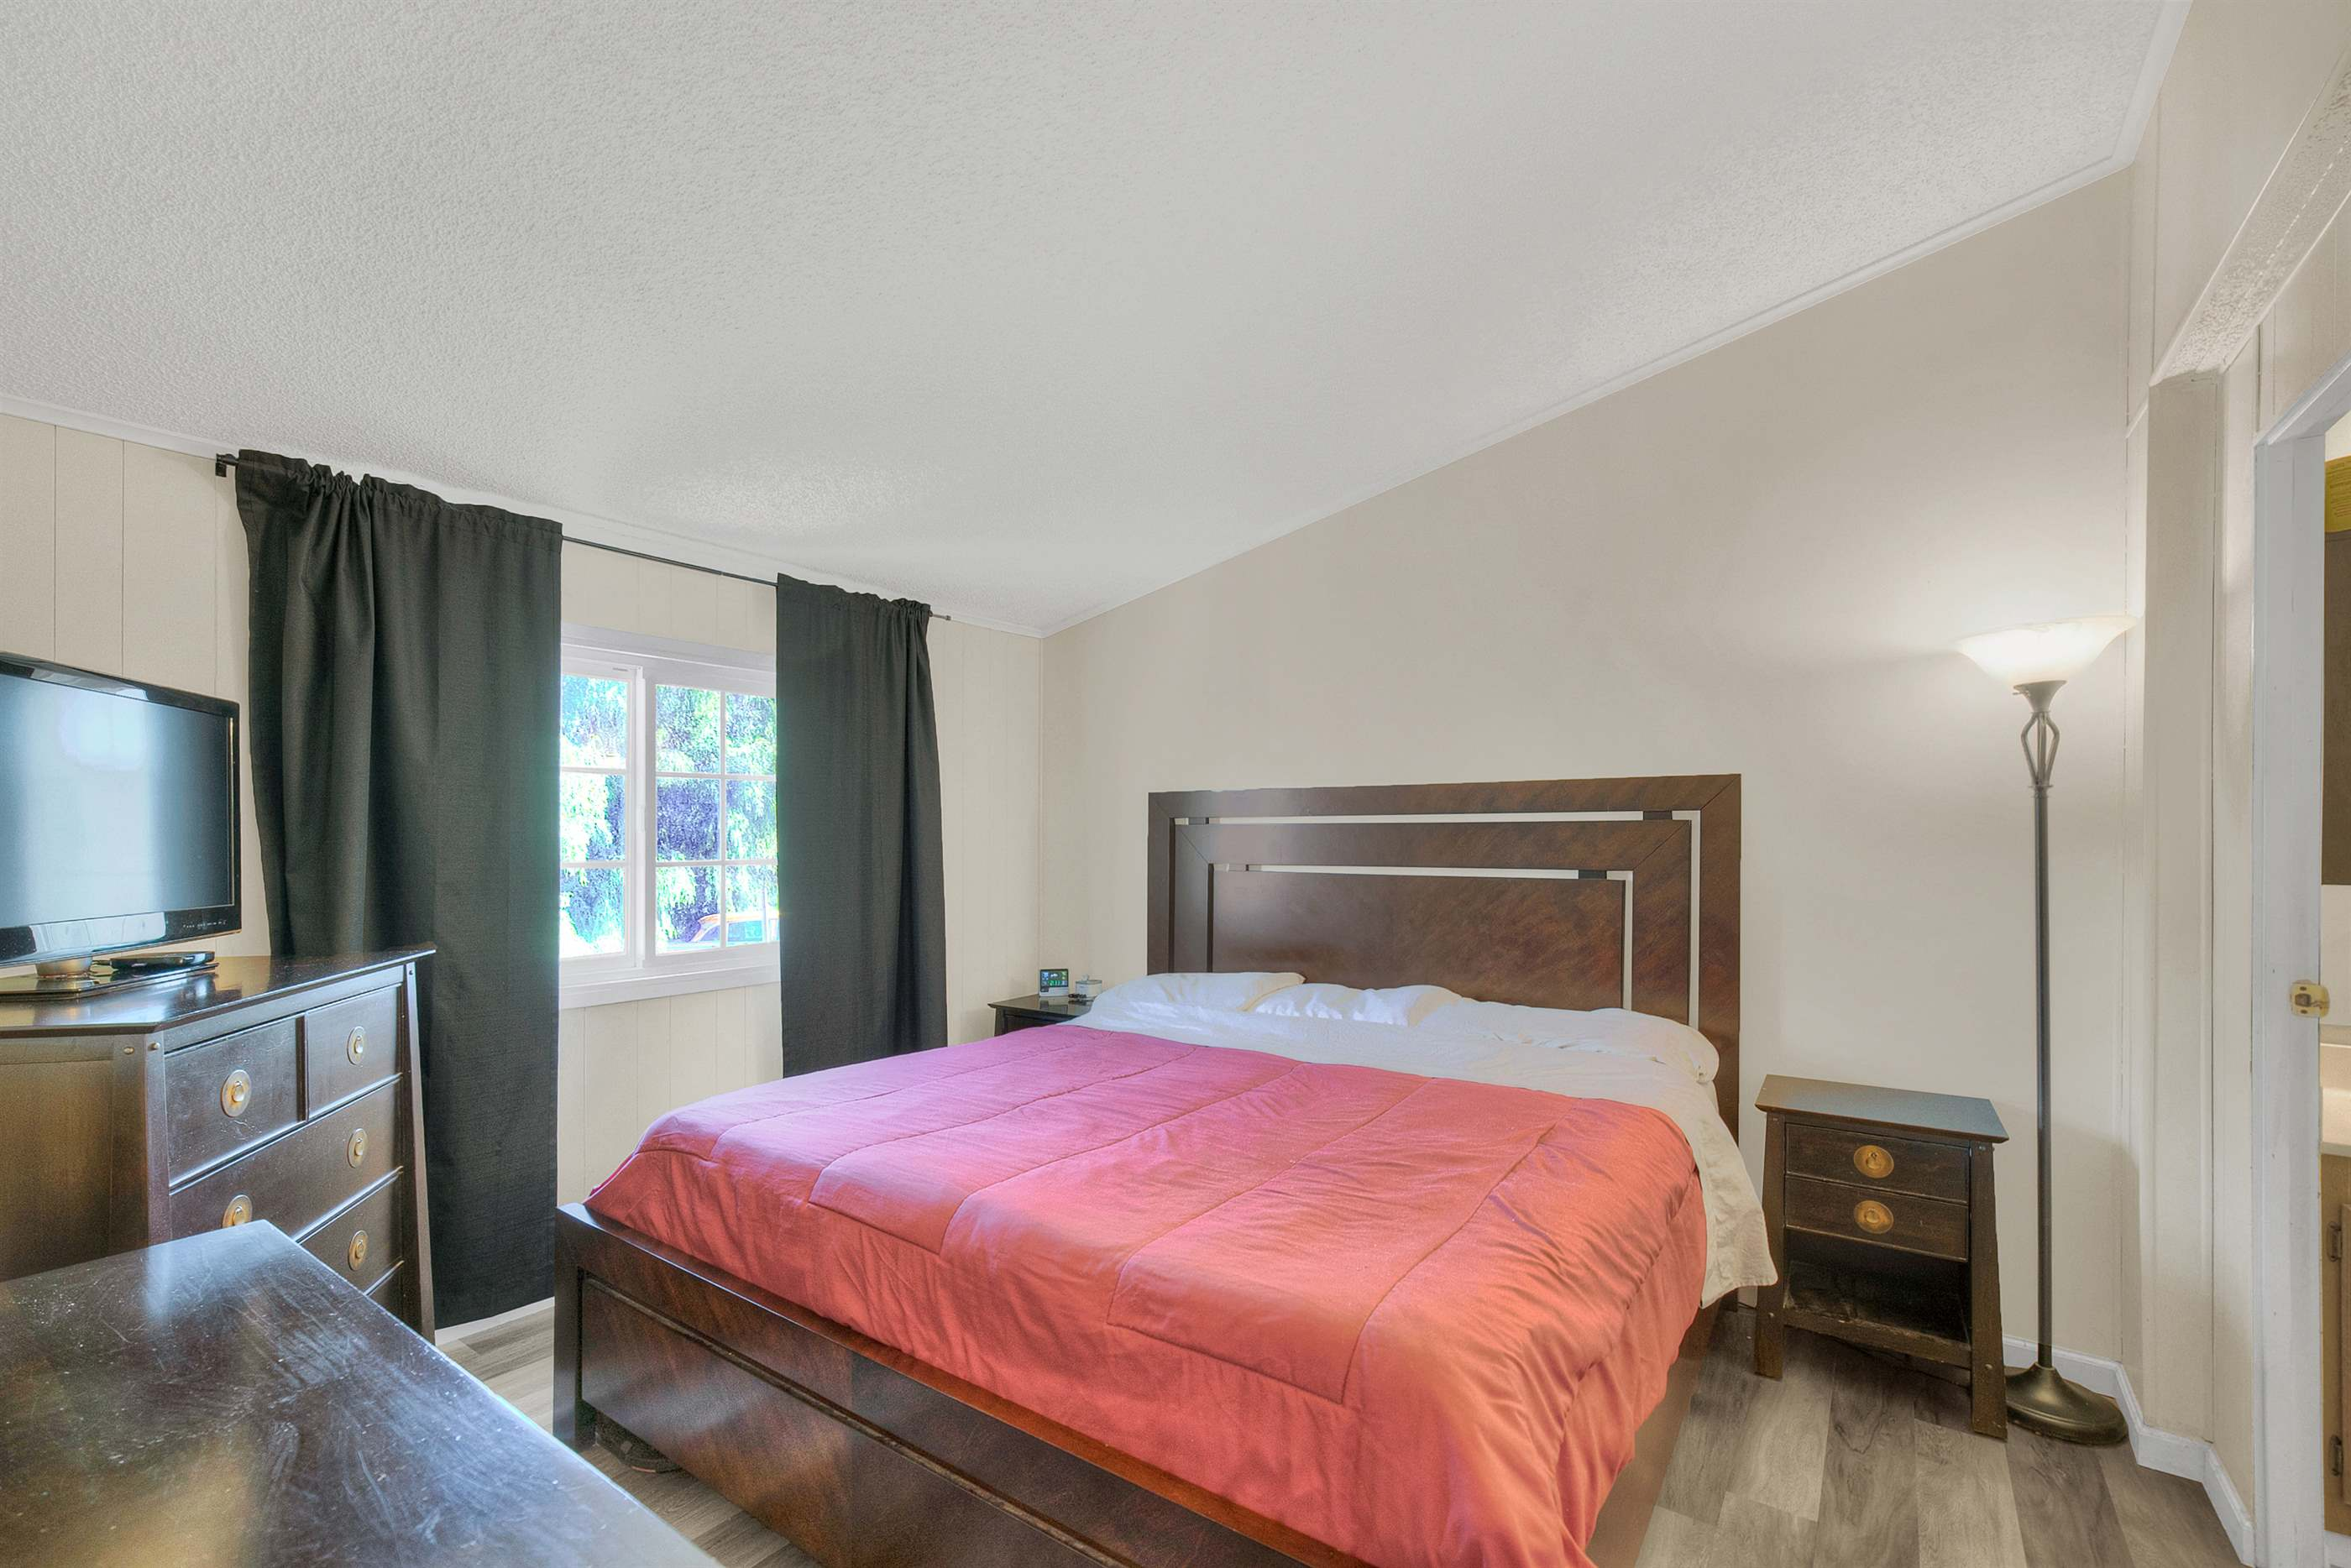 16818 Forrest St, Canyon Country, CA 91351